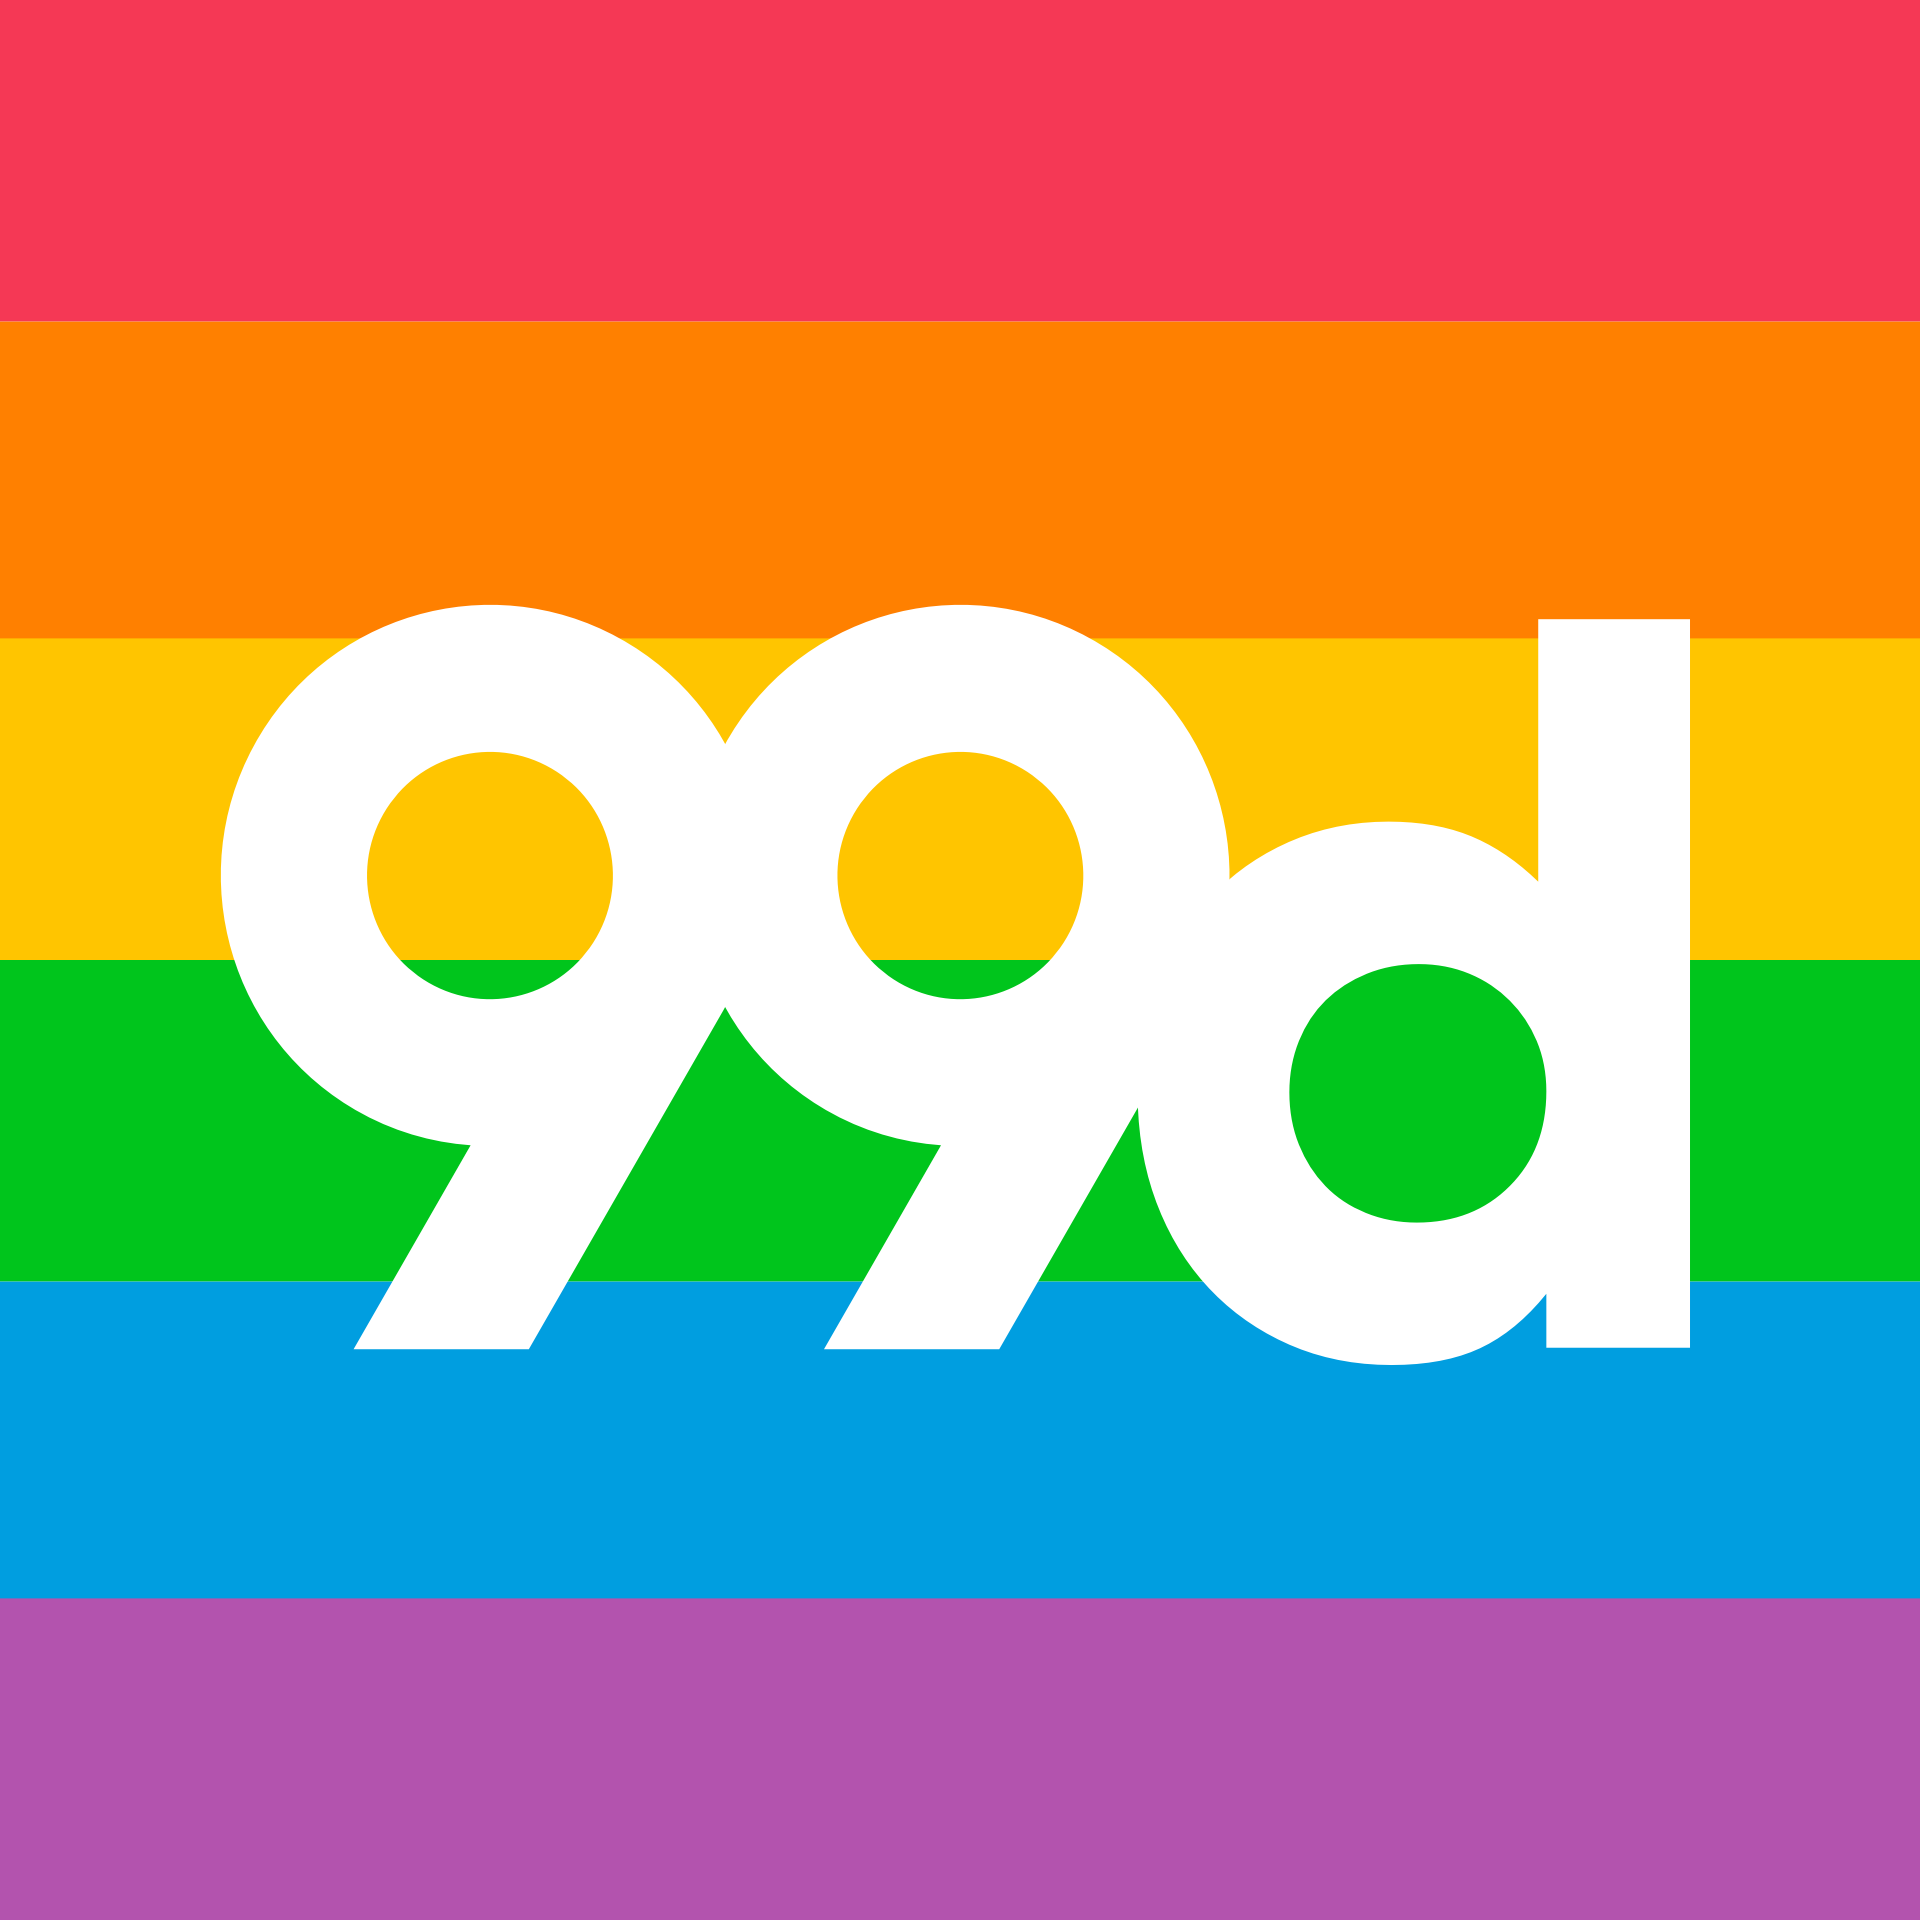 A rainbow themed version of 99designs' logo